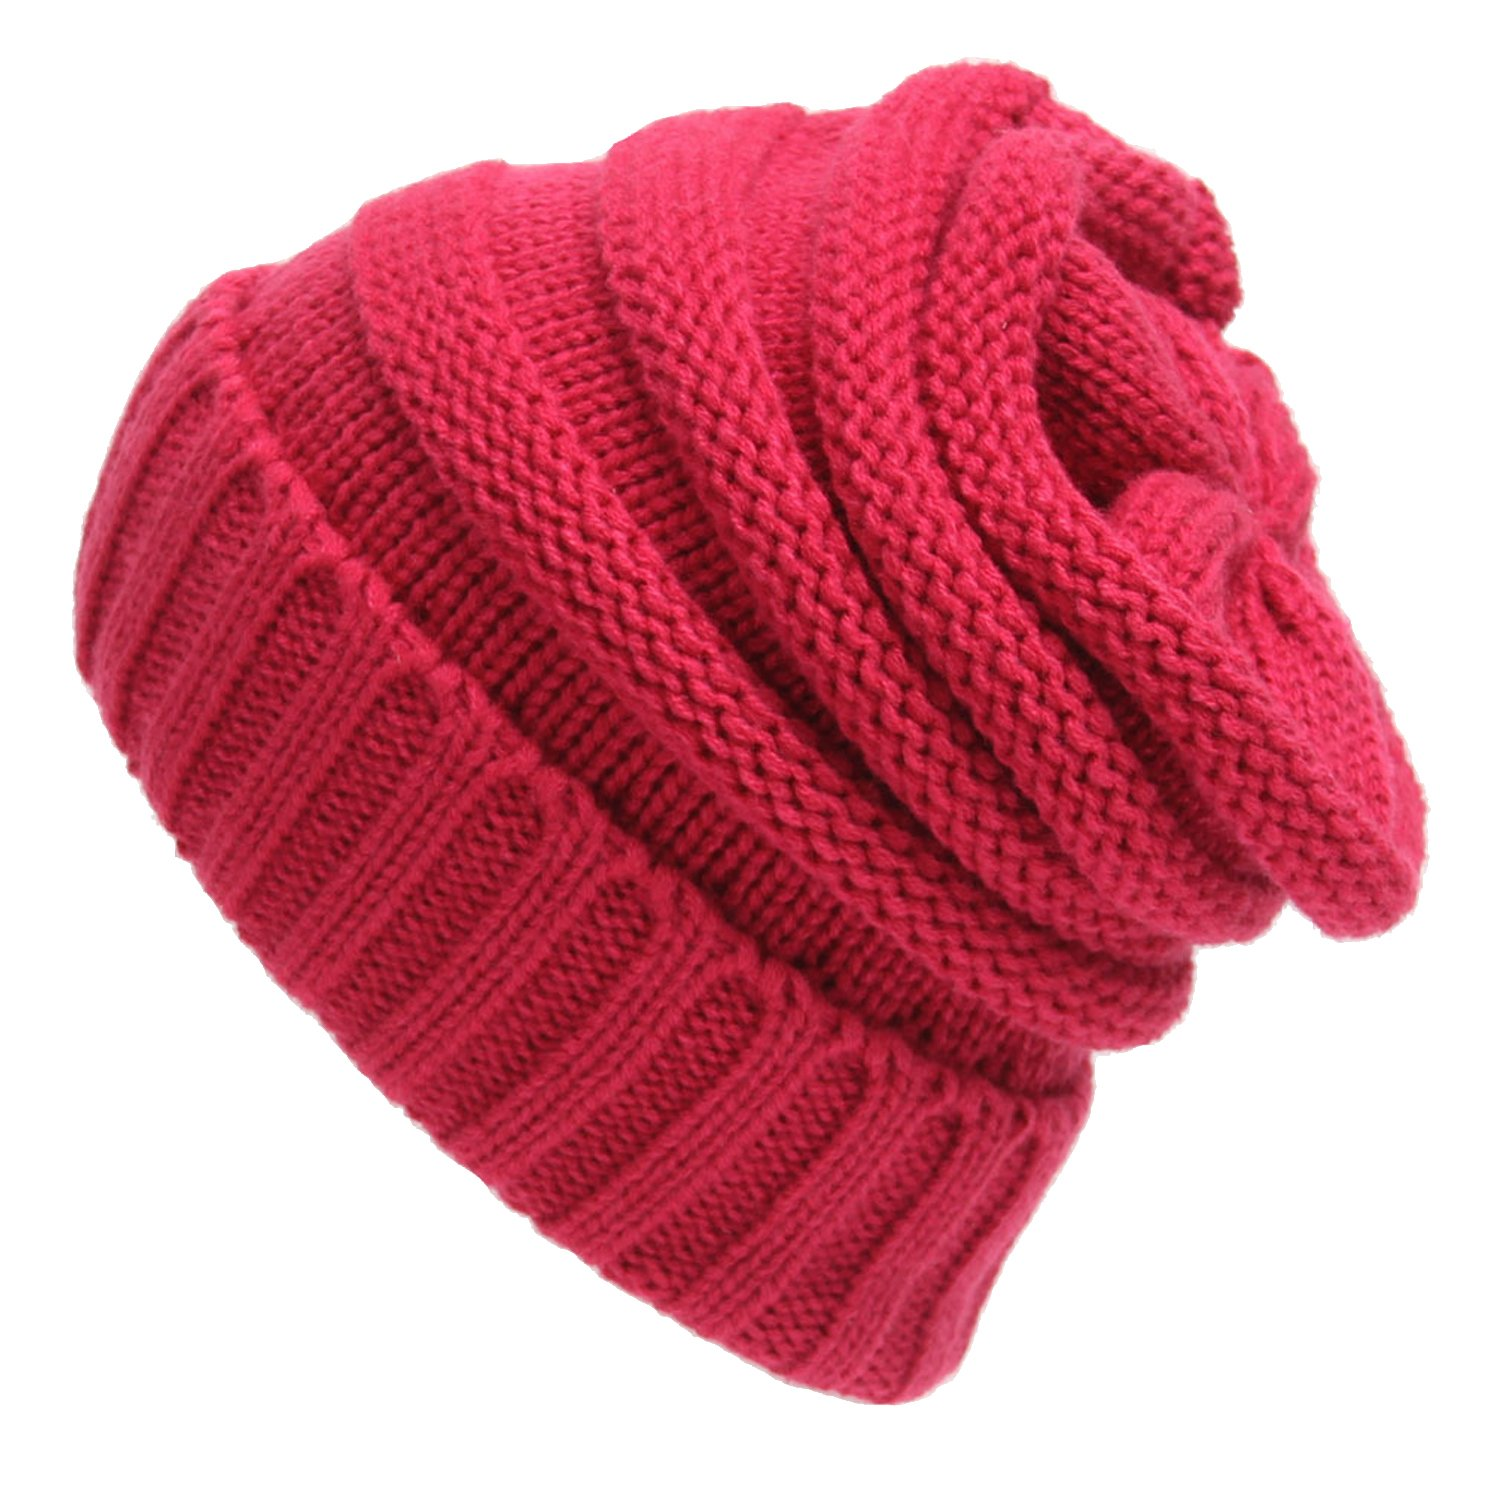 Youndcc Womens Warm Soft Stretch Knitted Skullies Beanie Earcuff Hat